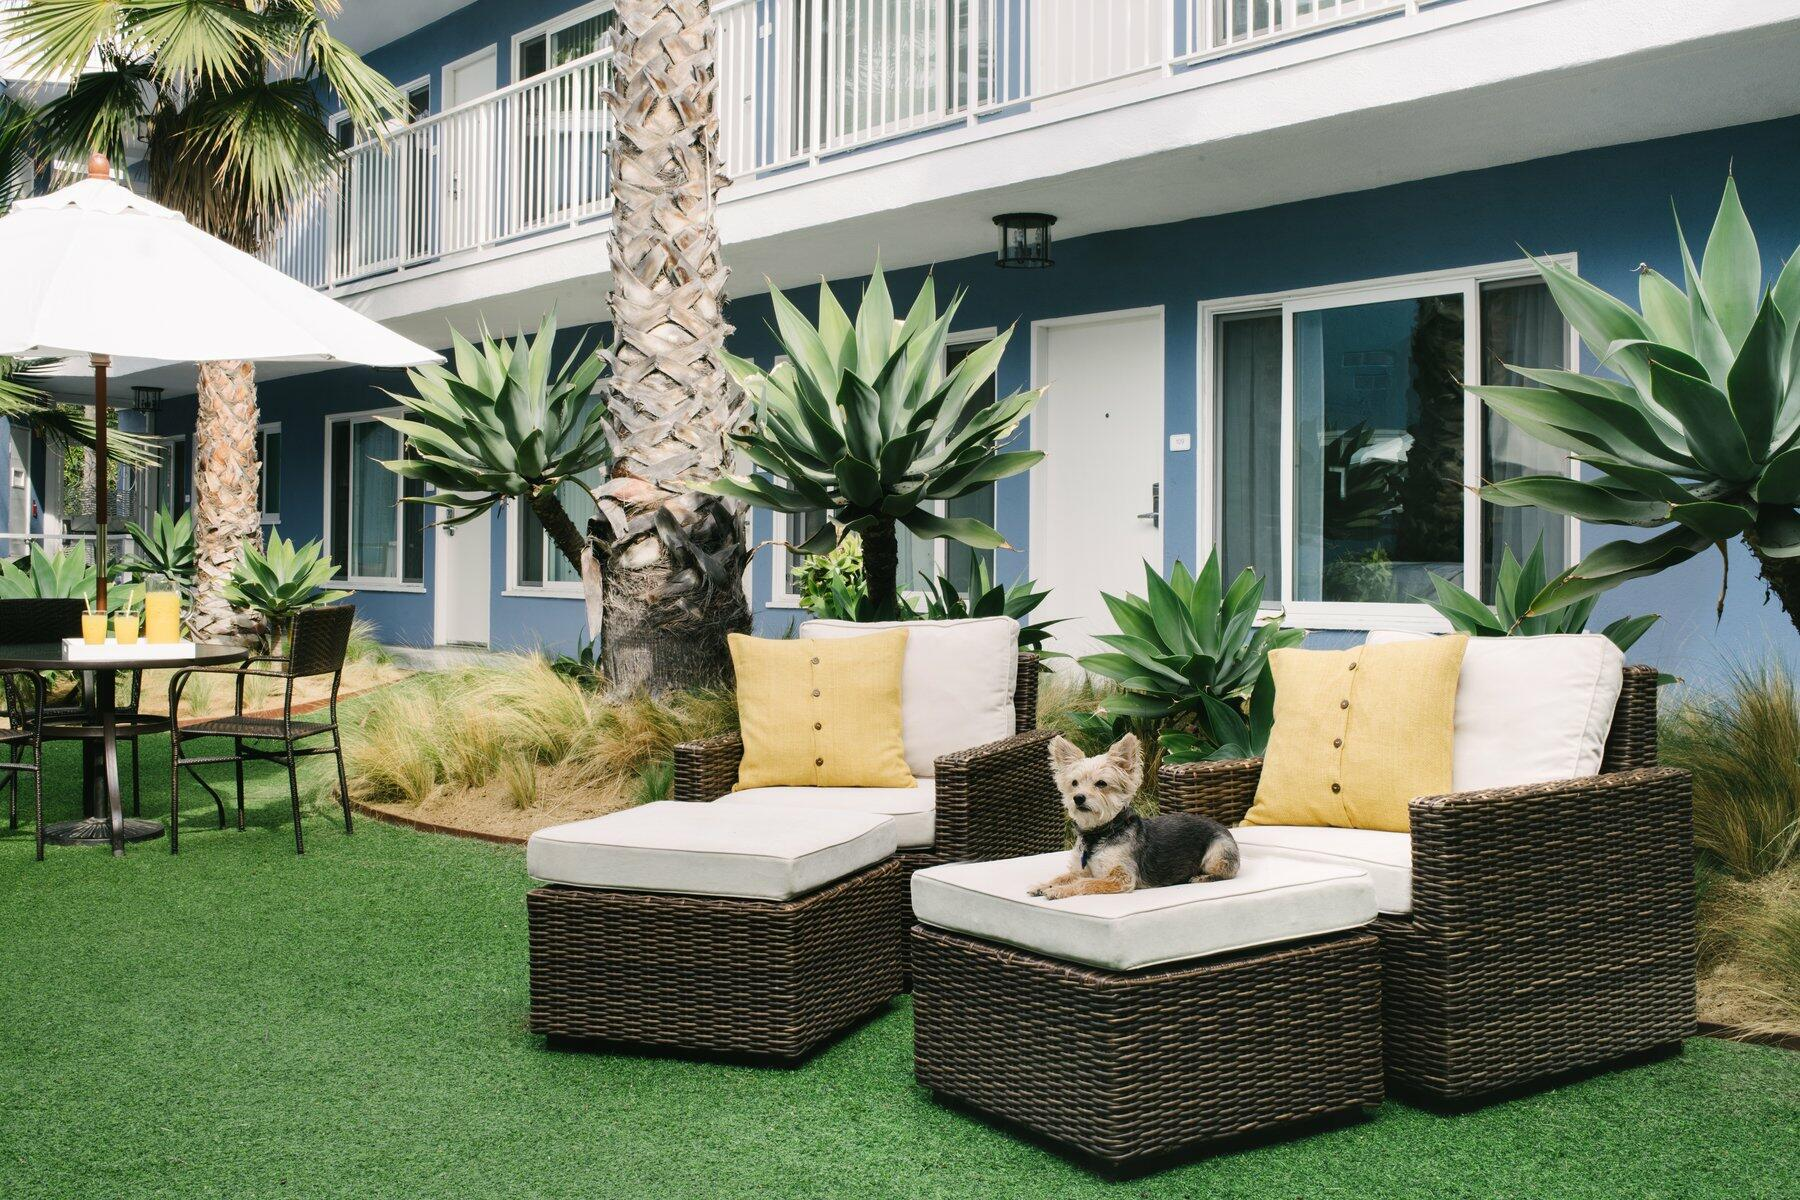 Grassy courtyard with plush chairs and small dog